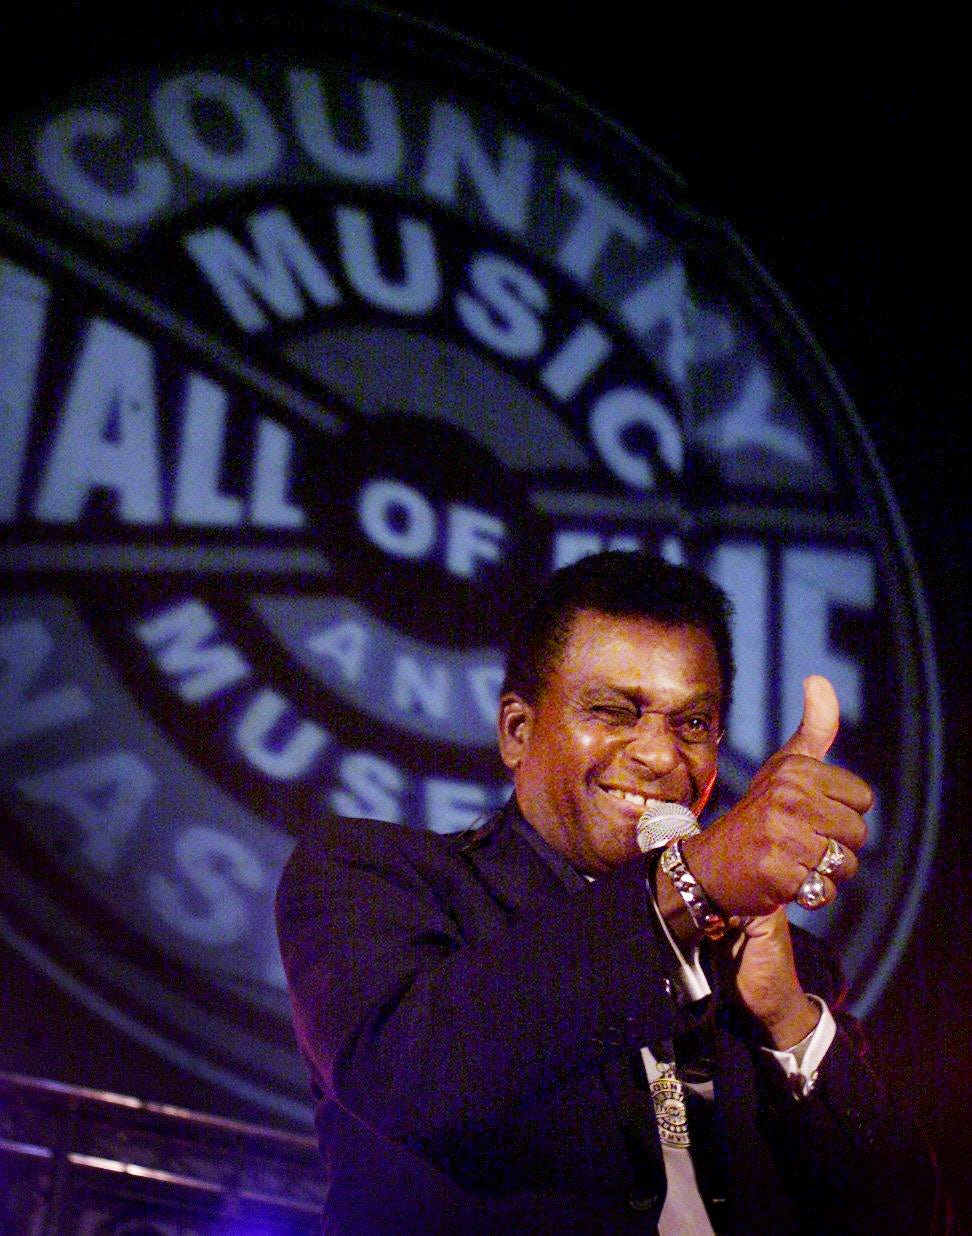 An exuberant Charley Pride, while singing a few songs, flashes a thumbs up to a friend in the audience after receiving a medallion along with the family of Faron Young commemorating their 2000 inductions into the Country Music Hall of Fame on March 13, 2001.